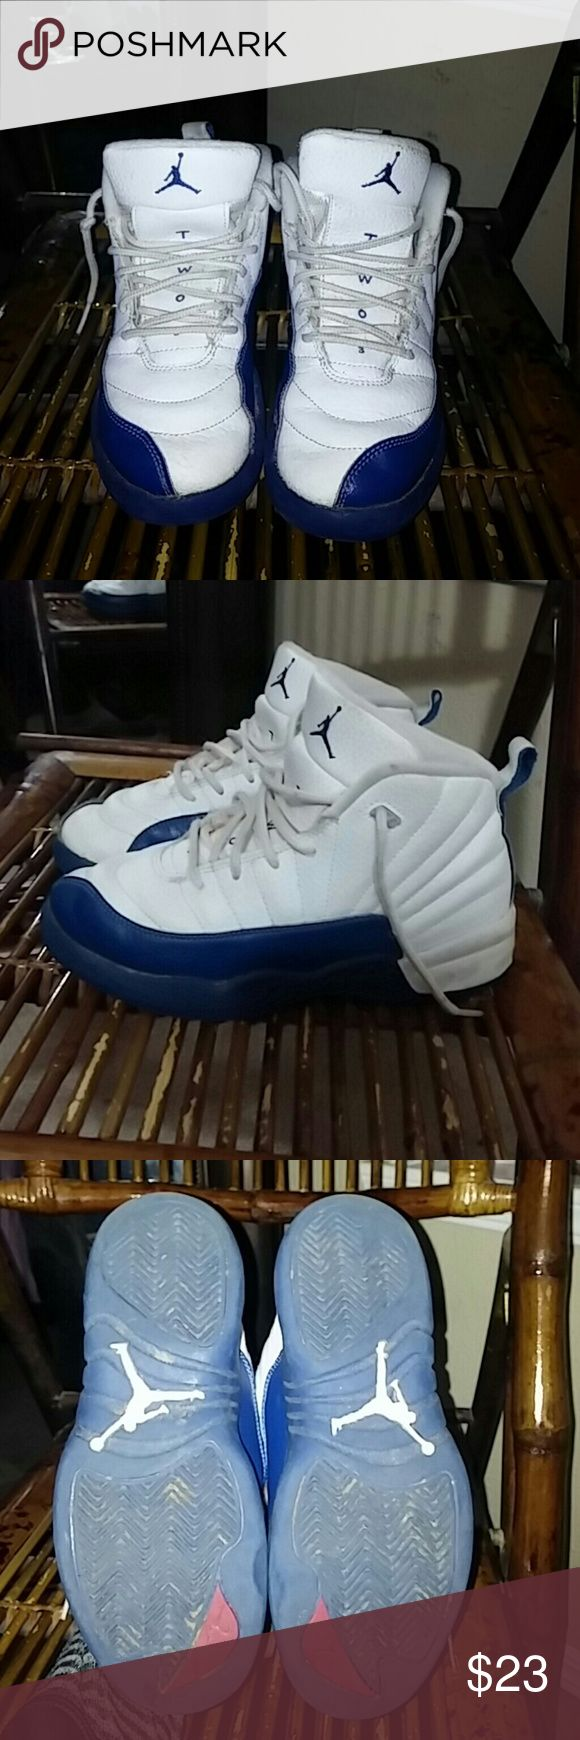 Michael Jordan French blue 12 Michael Jordan French blue 12 in great condition just need to be cleaned up no holes no tears Michael Jordan's Shoes Sneakers